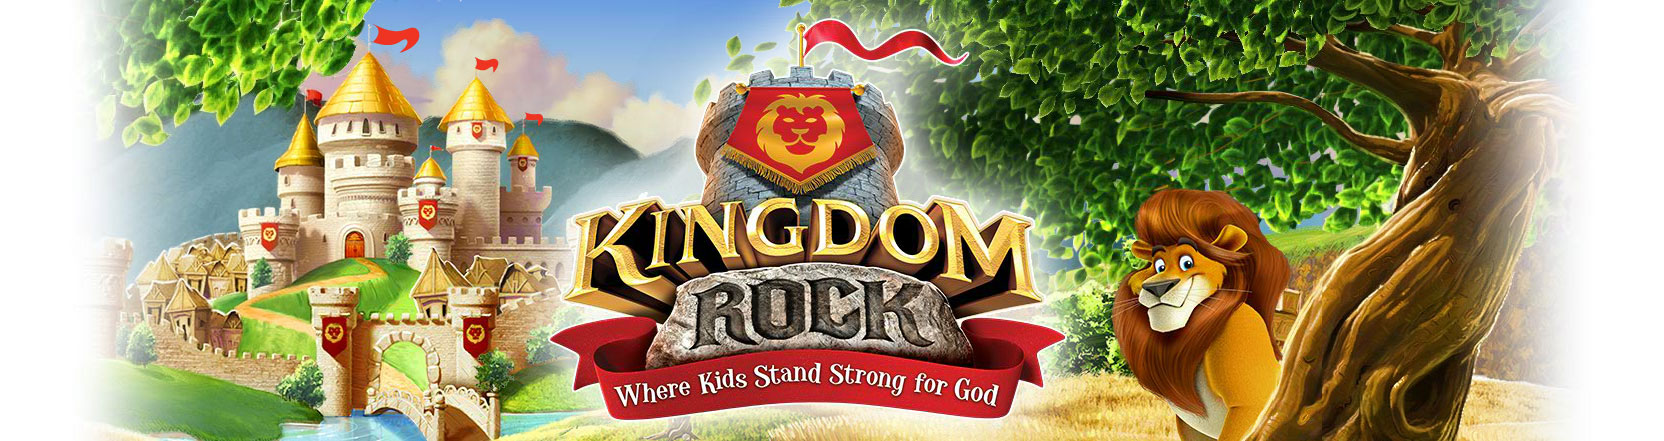 Kingdom Rock Coloring Page | Vacation bible school, Vbs, Vbs crafts | 441x1664